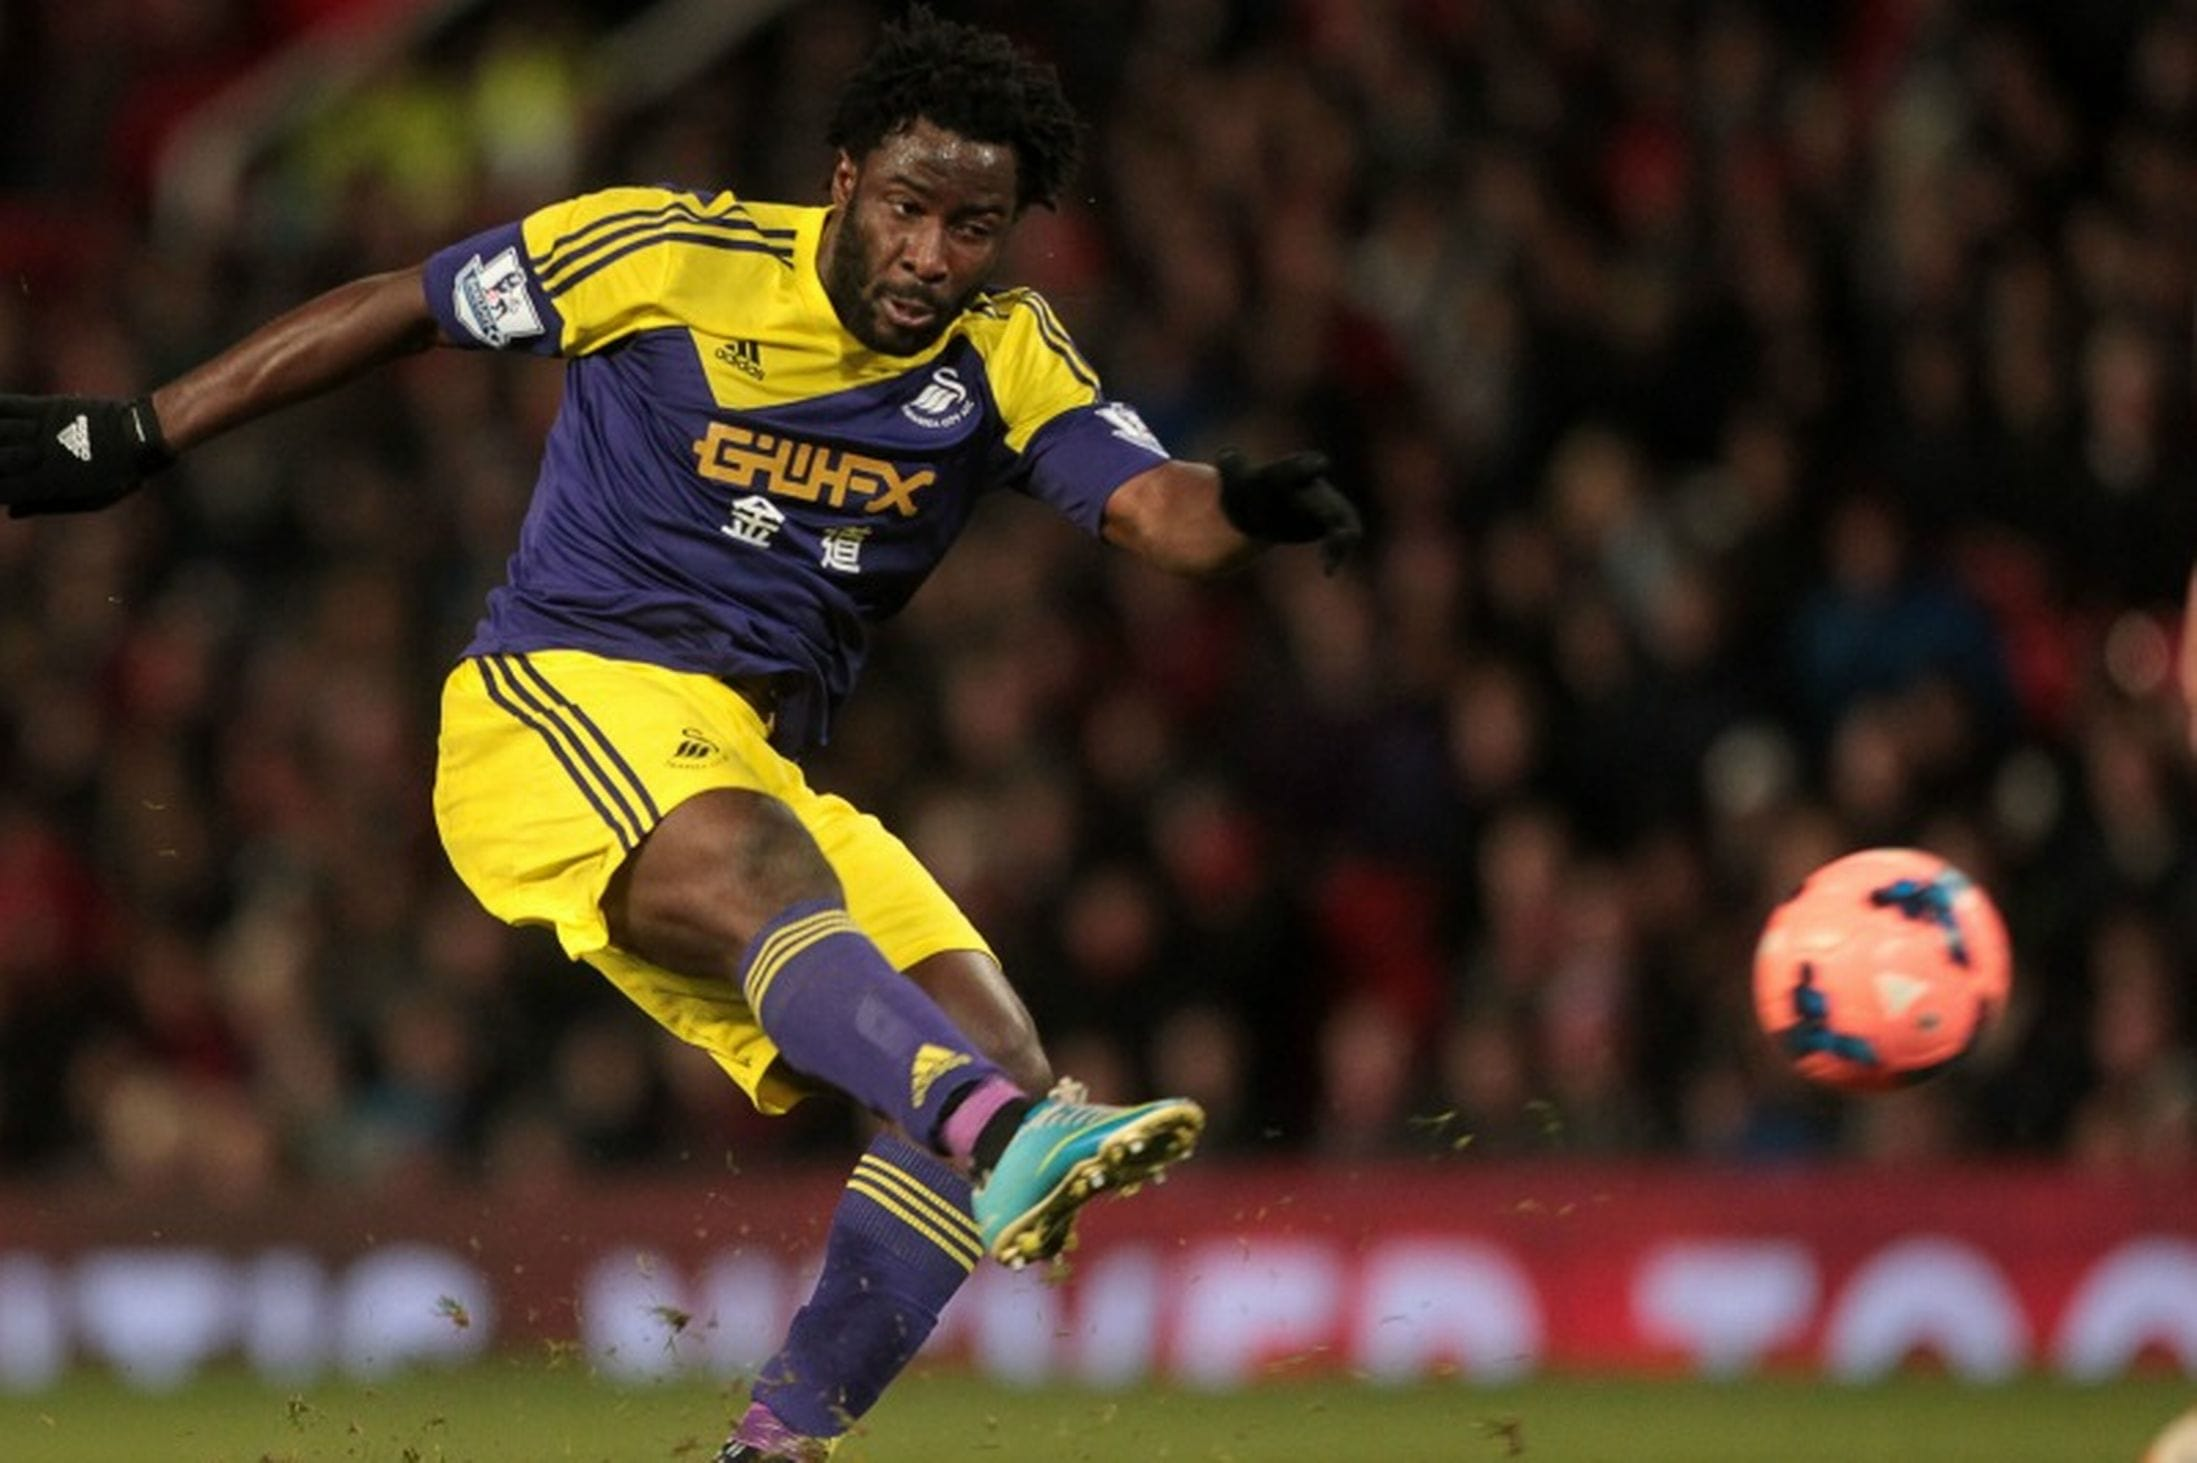 Côte d'Ivoire international striker Wilfried Bony has signed a one-year contract extension at the Liberty Stadium.